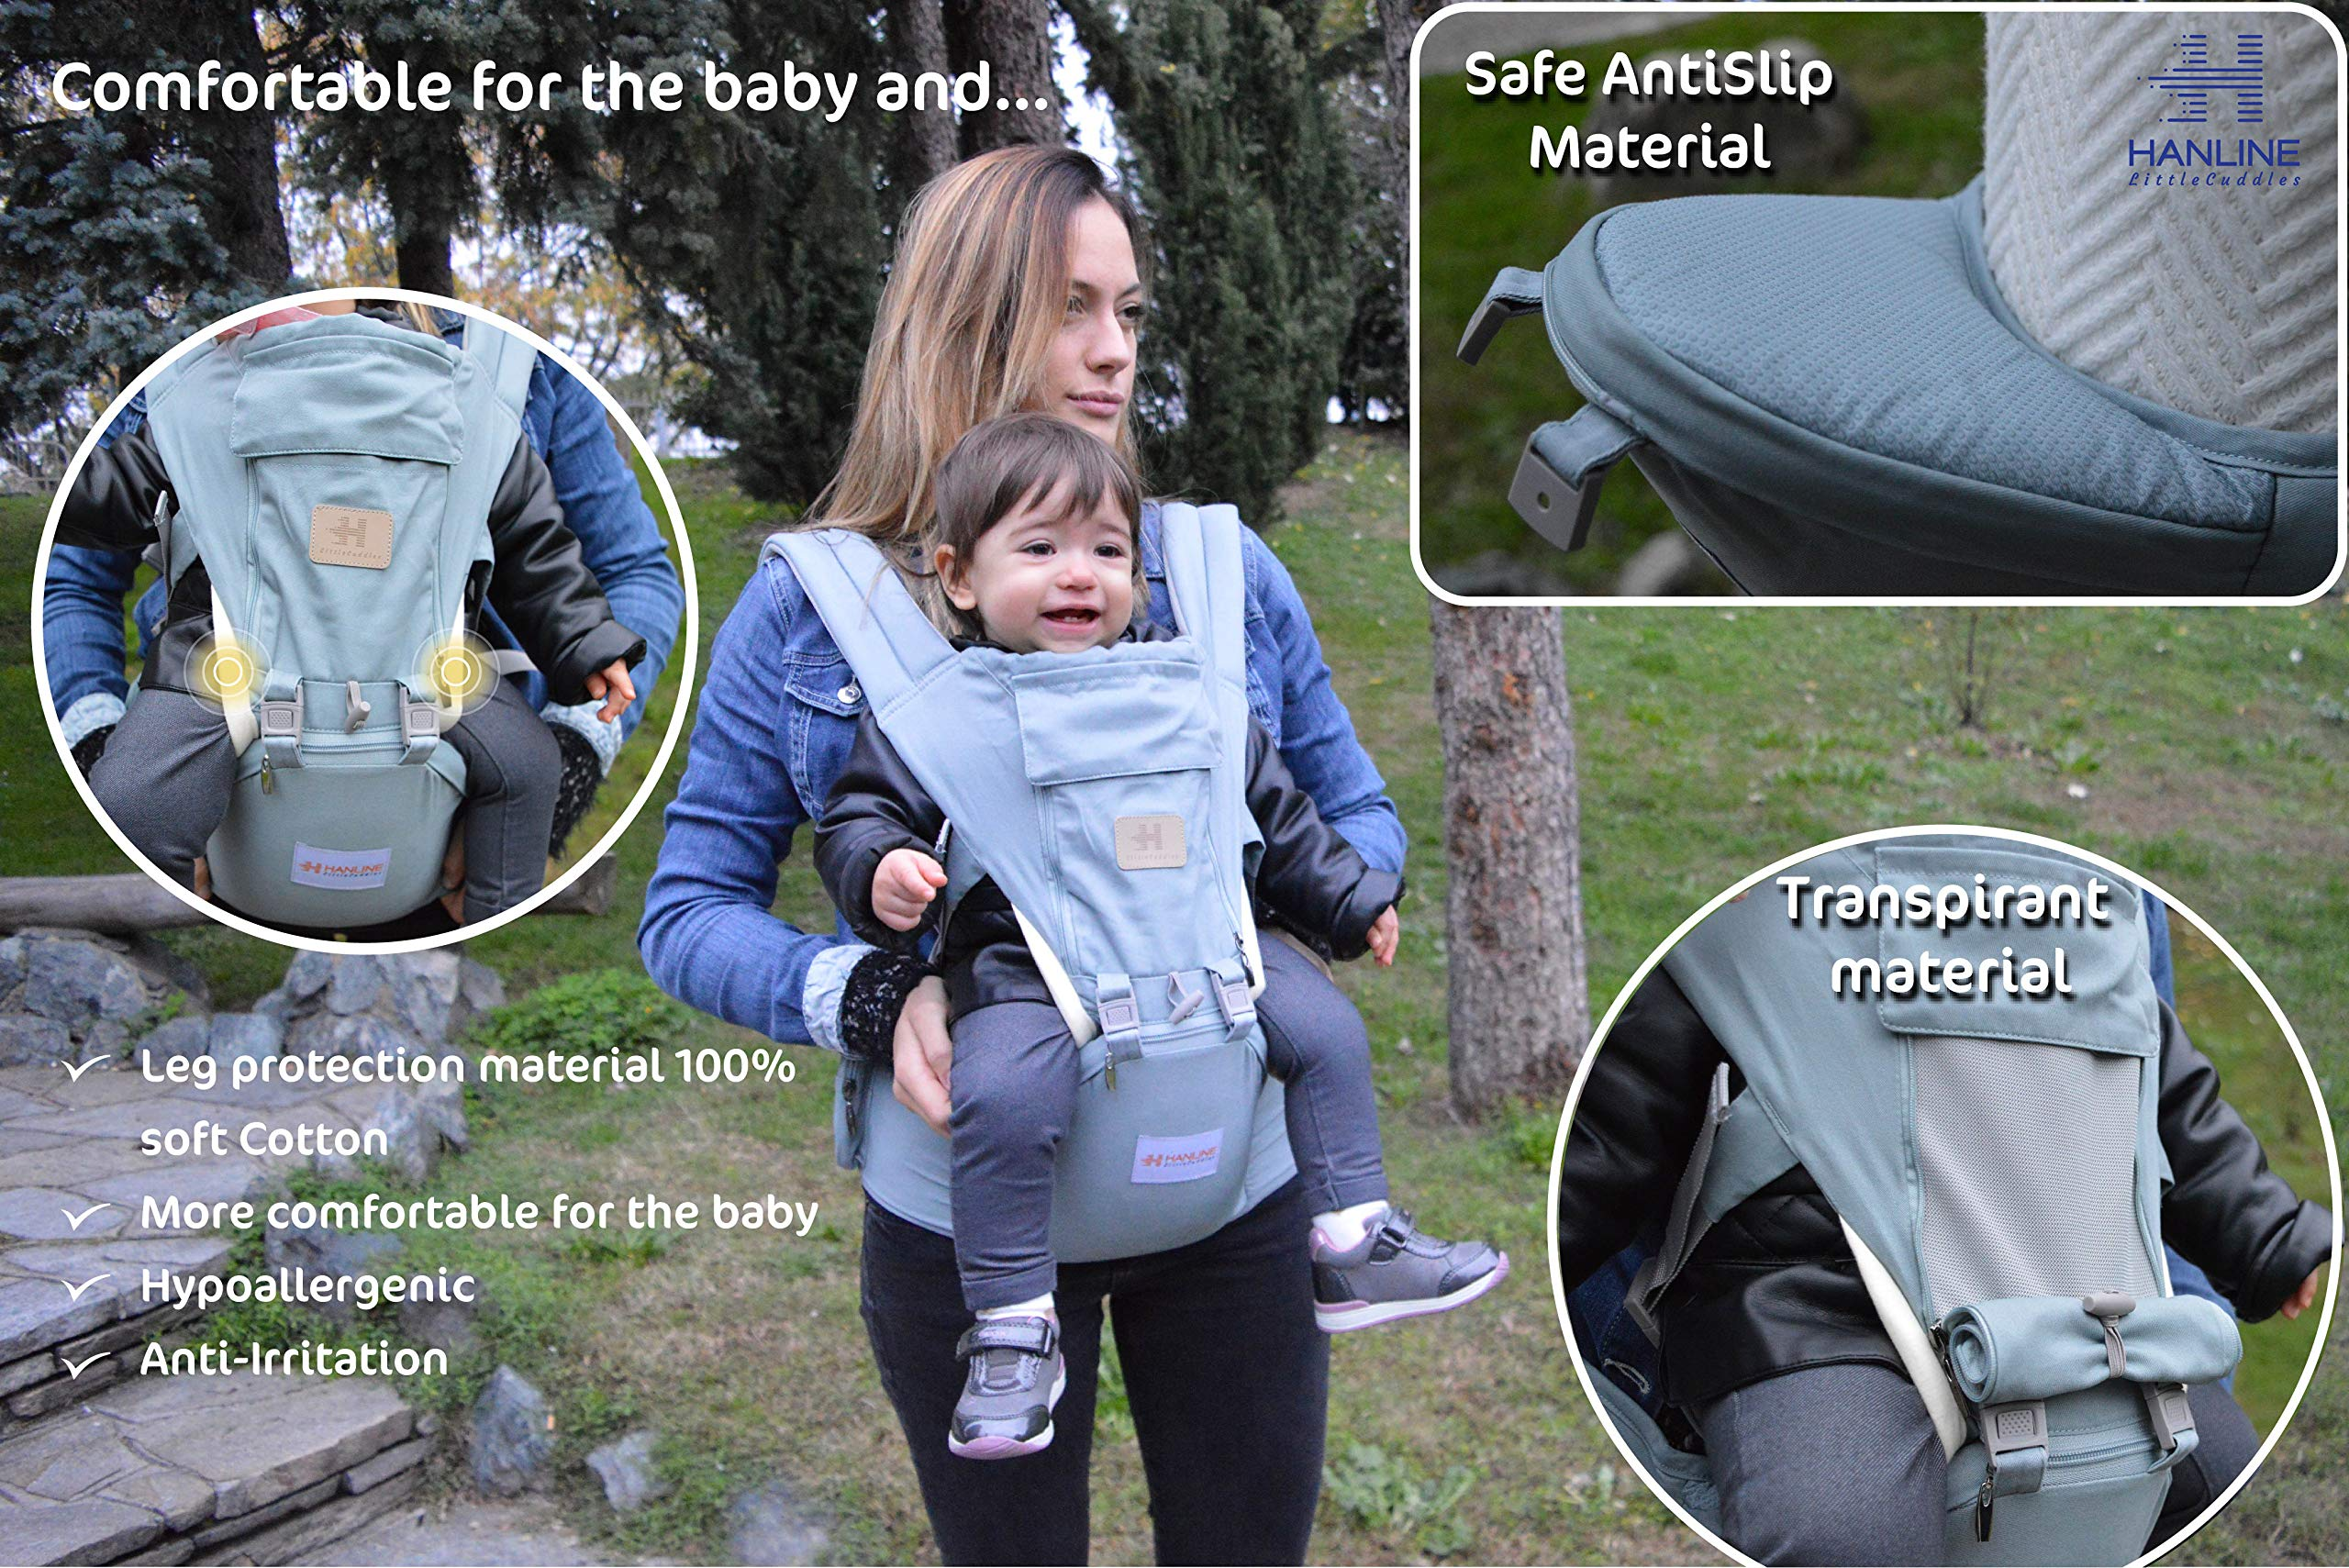 HANLINE LITTLECUDDLES 3-in-1 Ergonomic Baby Carrier Backpack [4 Colours: Turquoise-Blue-Grey] - High Quality/Breathable/Easily Adjustable Fabric - for 0-3 Years Navy Blue (Turquoise) Hanline LittleCuddles 👶 WE ONLY USE HIGH QUALITY MATERIALS: Hanline LittleCuddles is committed to selecting high quality fabrics to make the use of our baby bags more comfortable and safe. The light cotton combined with the soft padded material which is pleasant to the touch increase the comfort of the newborn and parents. On summer days, you can open the front zip which facilitates the passage of air inside the fabric, thanks to the soft breathable mesh fabric. 📃 CERTIFIED AND TESTED SAFETY: The Hanline baby carrier features a soft HIP seat which makes your baby's position ergonomic and safety. In addition, there are various soft fabric parts that eliminate pressure on the baby's body and the wearer. 🔝 3 PRODUCTS IN 1: The ergonomic 3 in 1 baby carrier can be worn in different positions that best adapt to the different stages of growing baby. 2